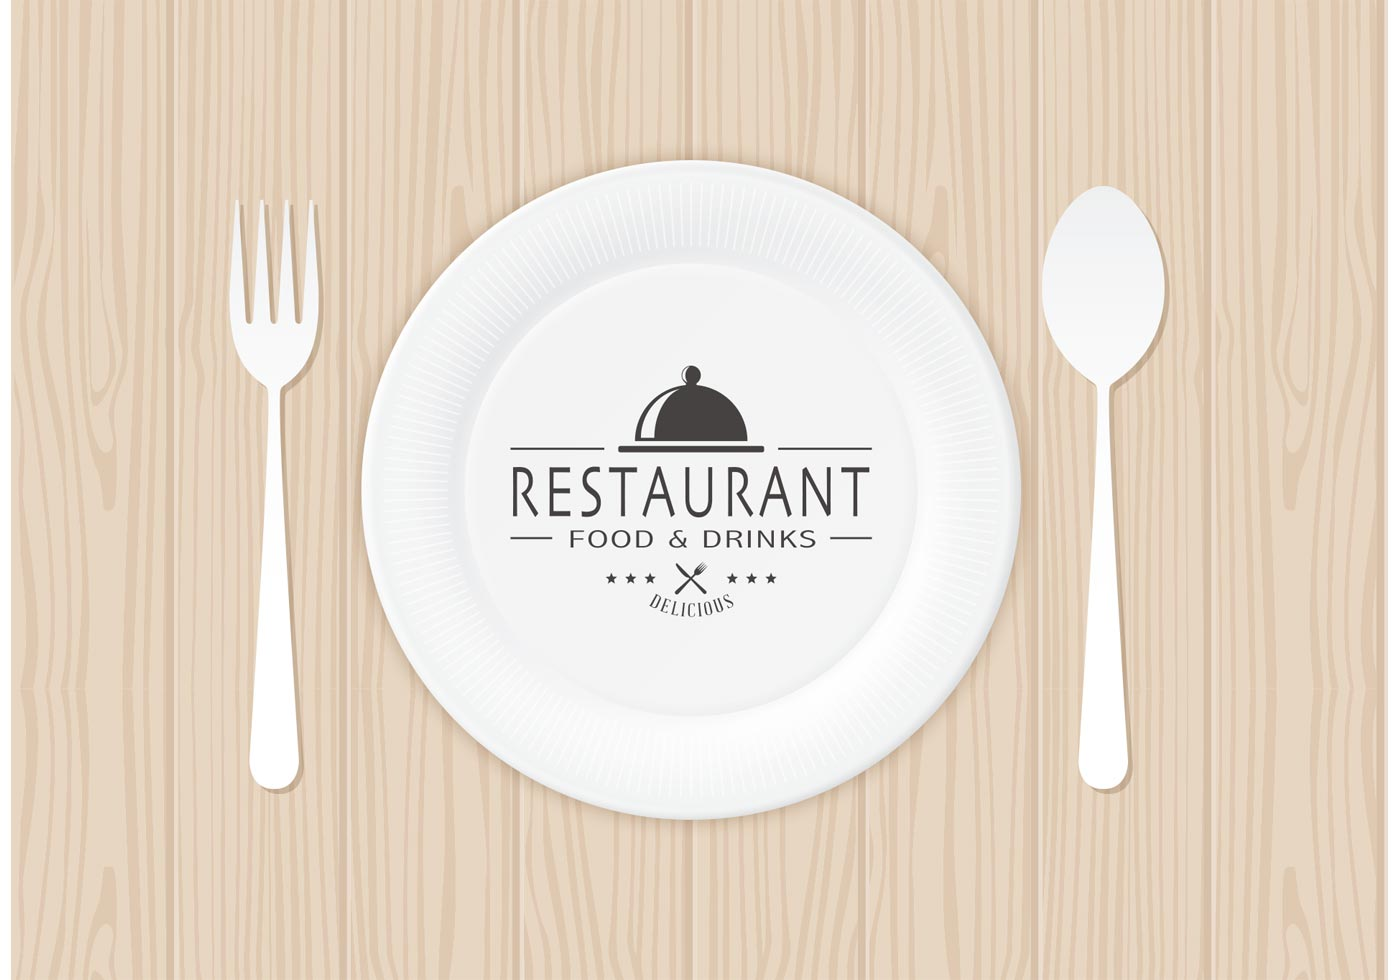 Restaurant Logo On Paper Plate Vector  Download Free Vector Art Stock Graphics  Images